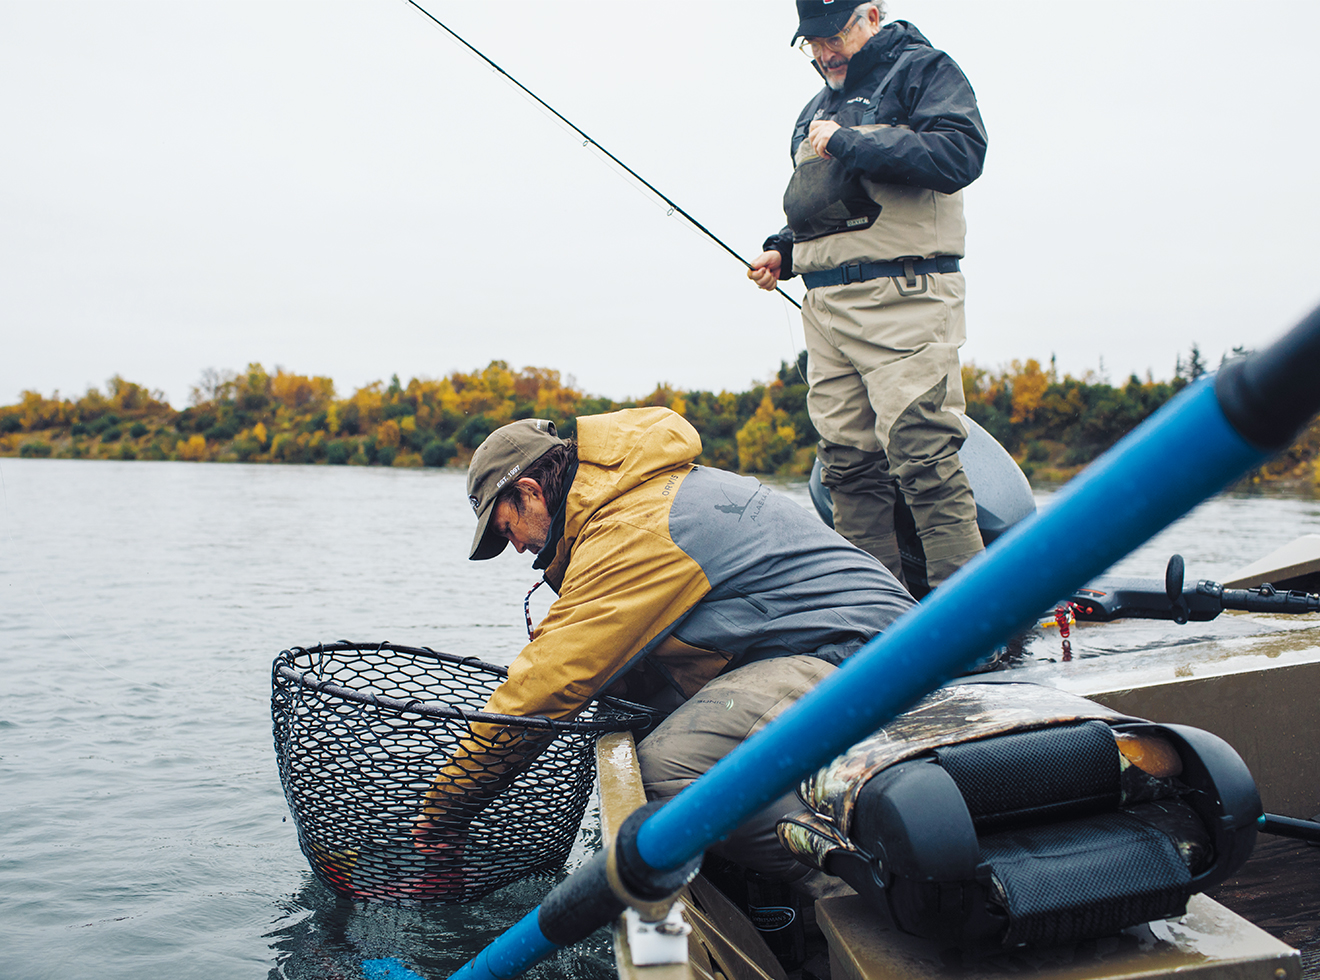 Kraft helps Collier unhook a sockeye salmon during a day pf fishing on the Kvichak River, a waterway downstream from the proposed Pebble Mine.